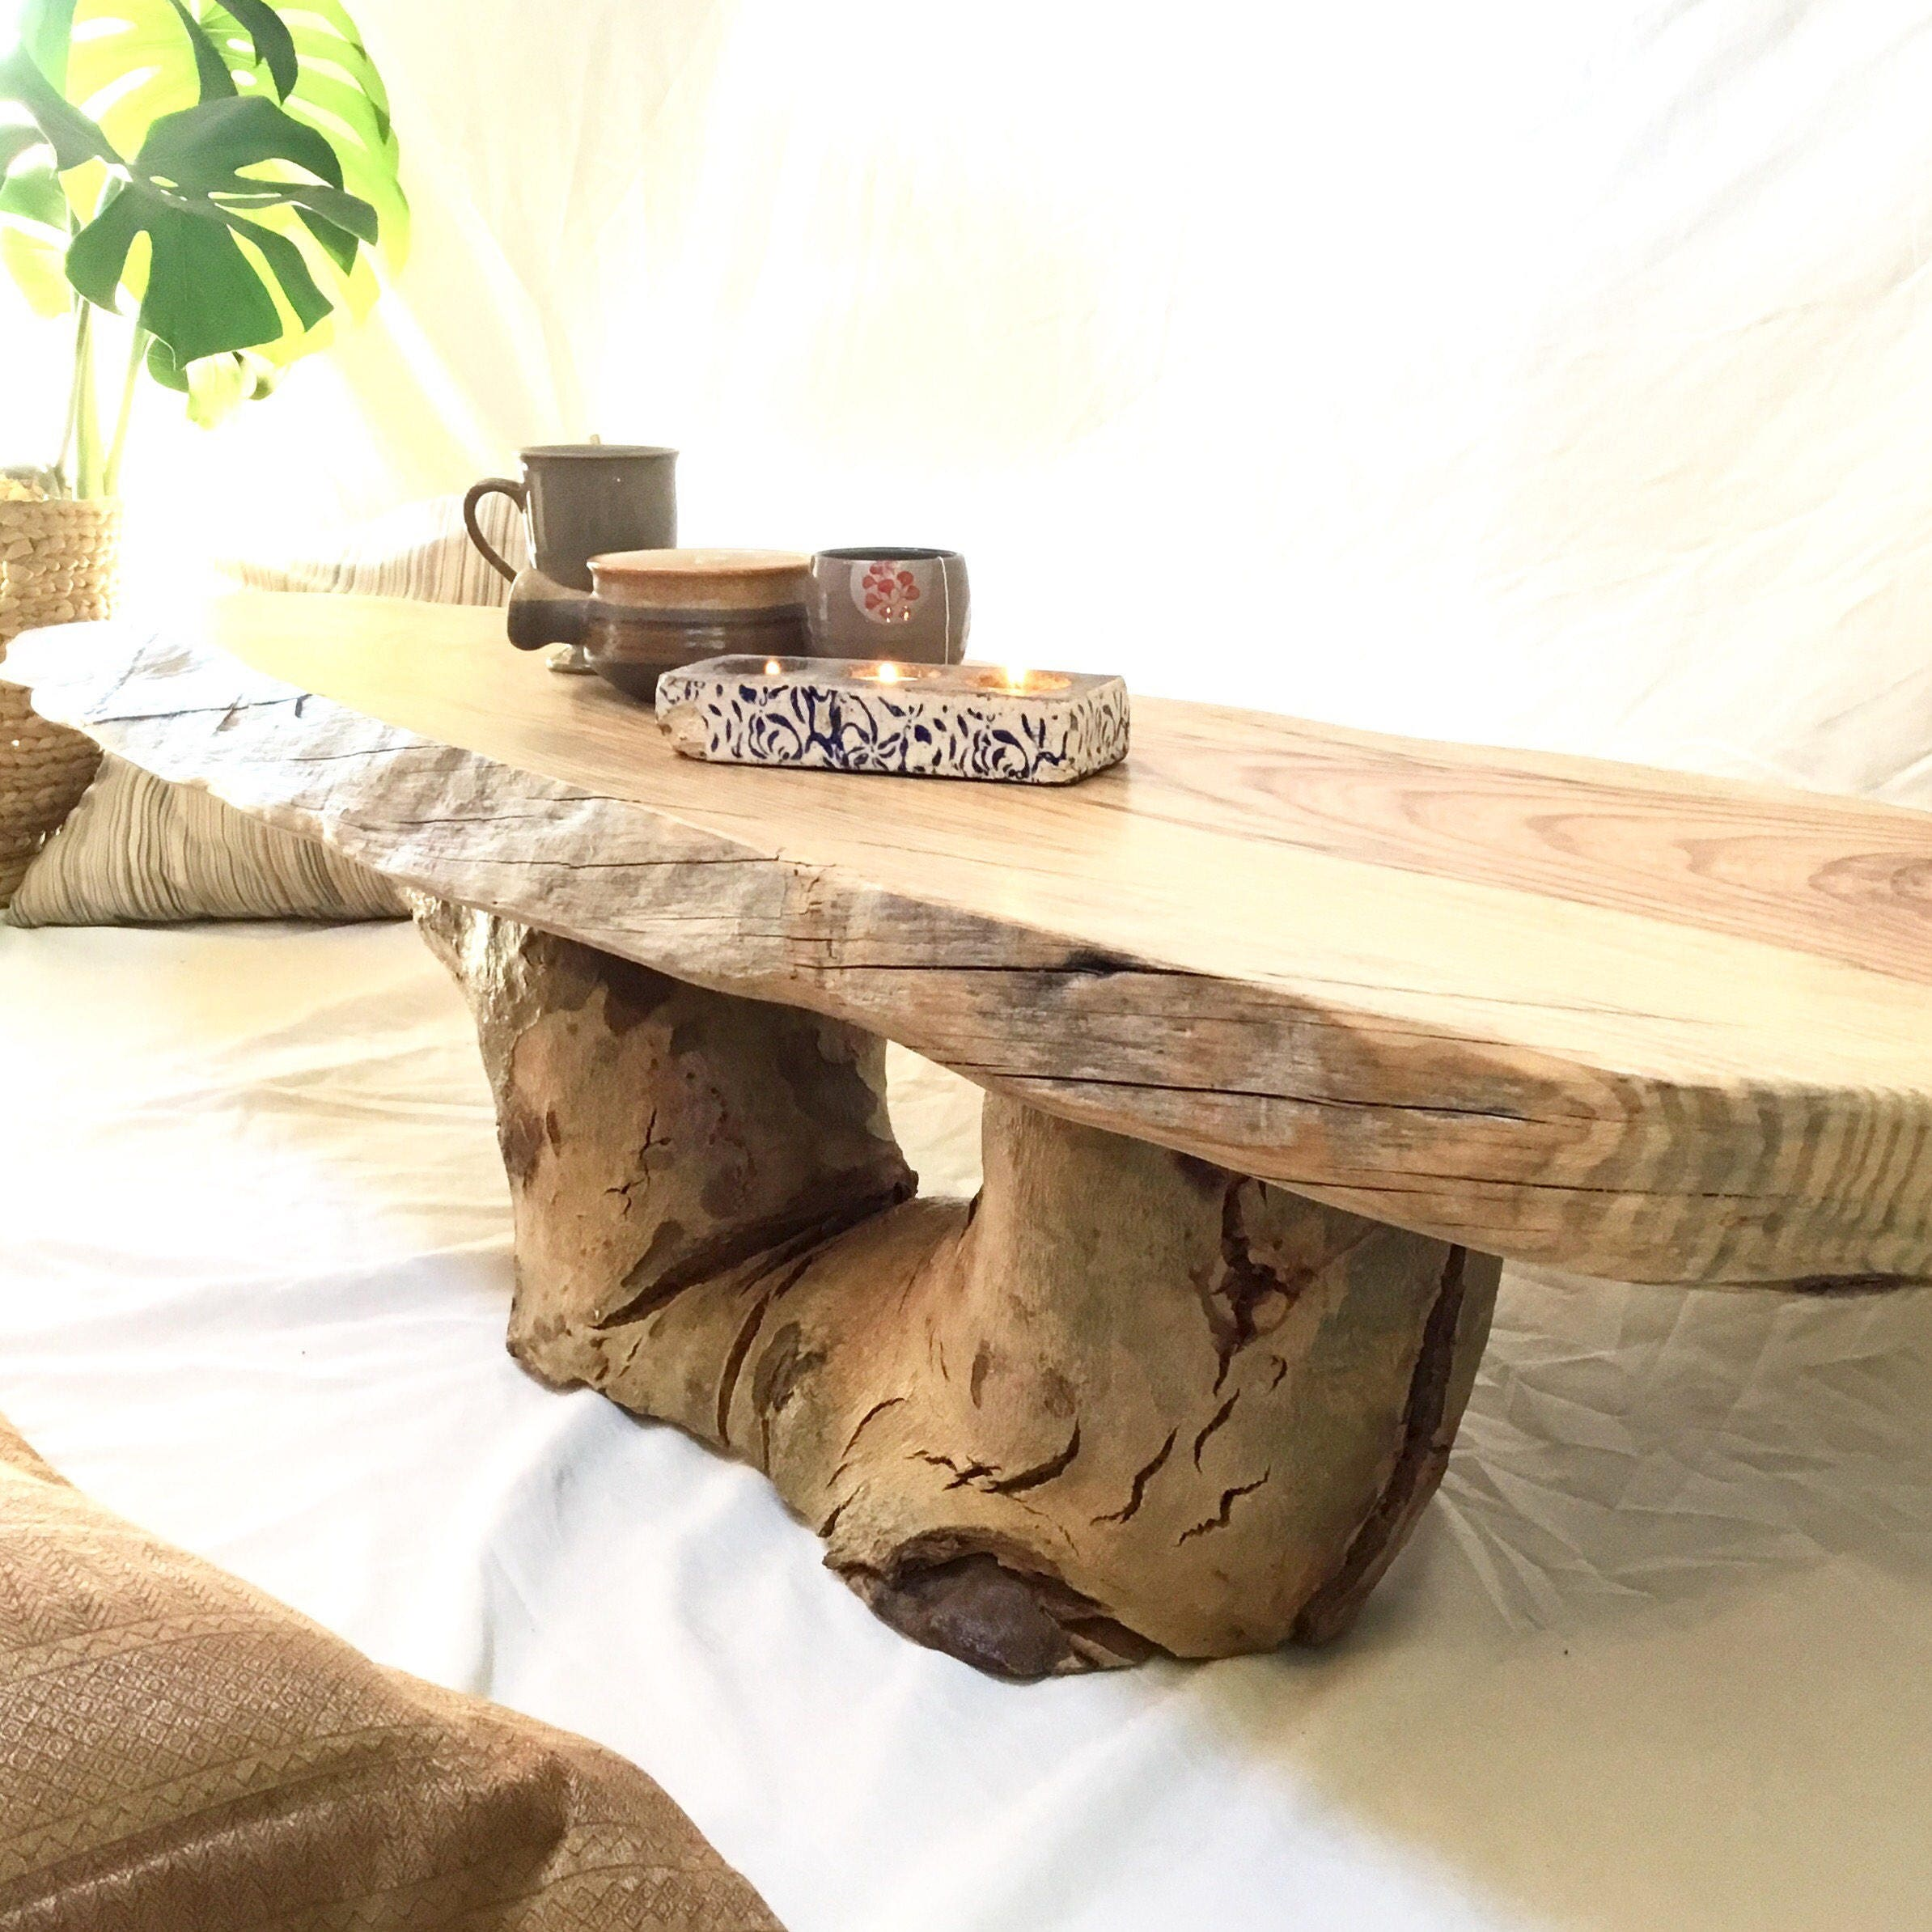 Coffee Table Timber Furniture Perth Wooden Live Edge Rustic OOAK Custom Made Australia